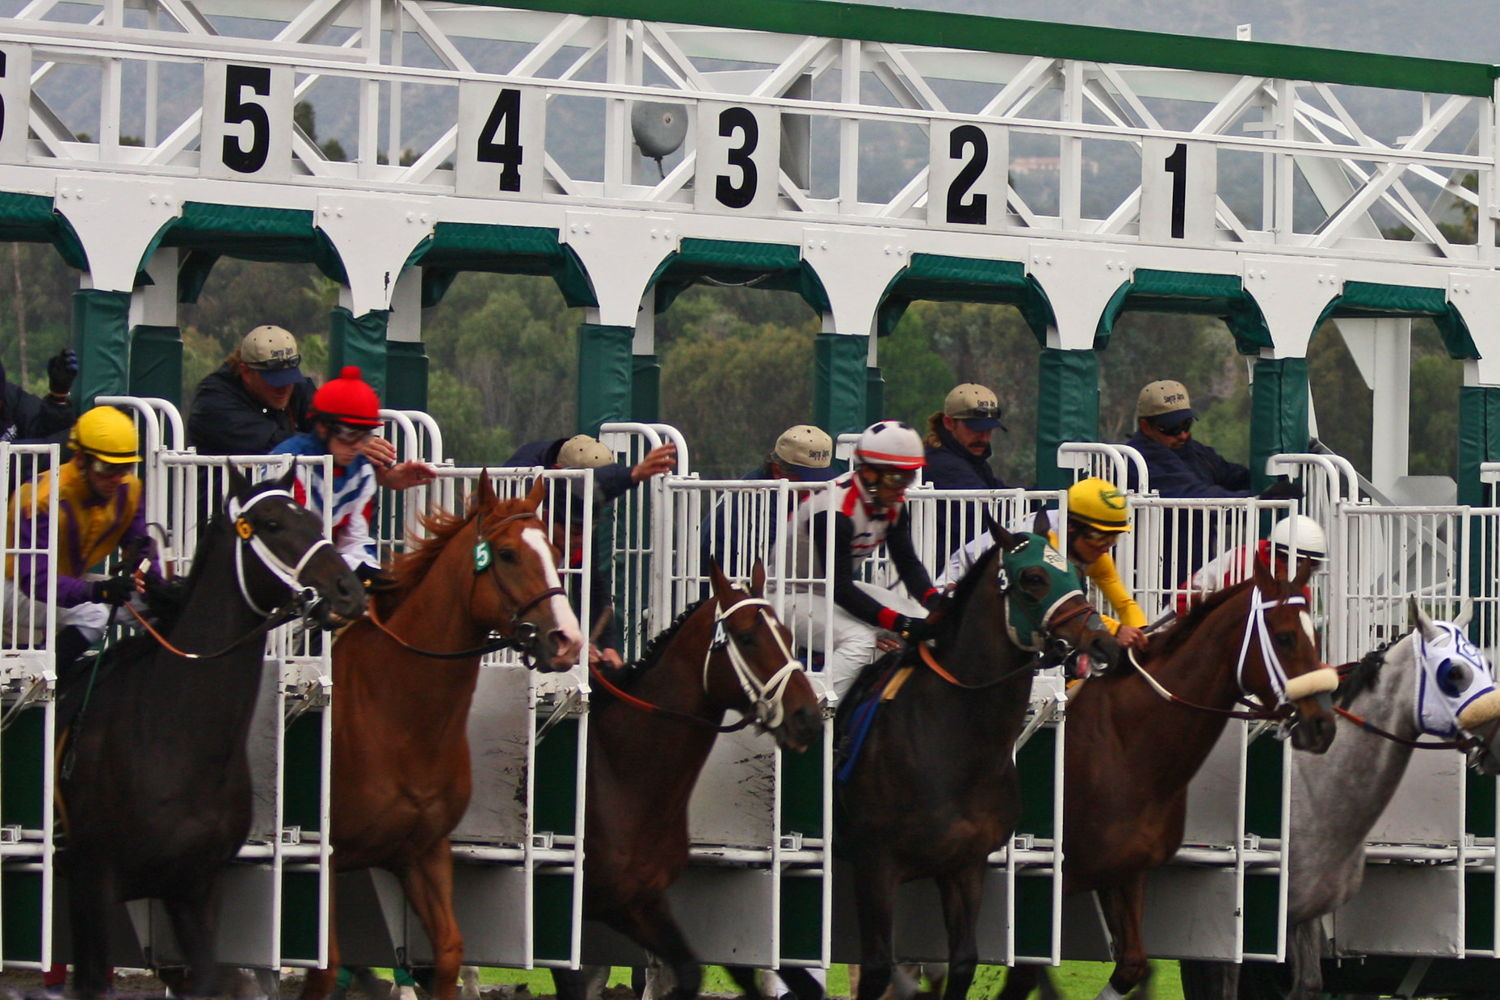 Off Track Betting in Ontario - Best Places to Bet on Horse Racing